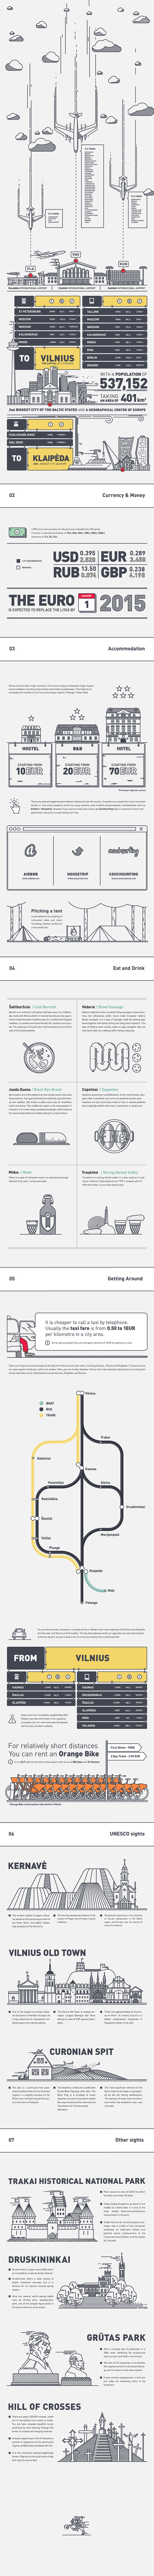 Infographic Infographic guide to Lithuania #design #infographic #lithuania #guide #illustration